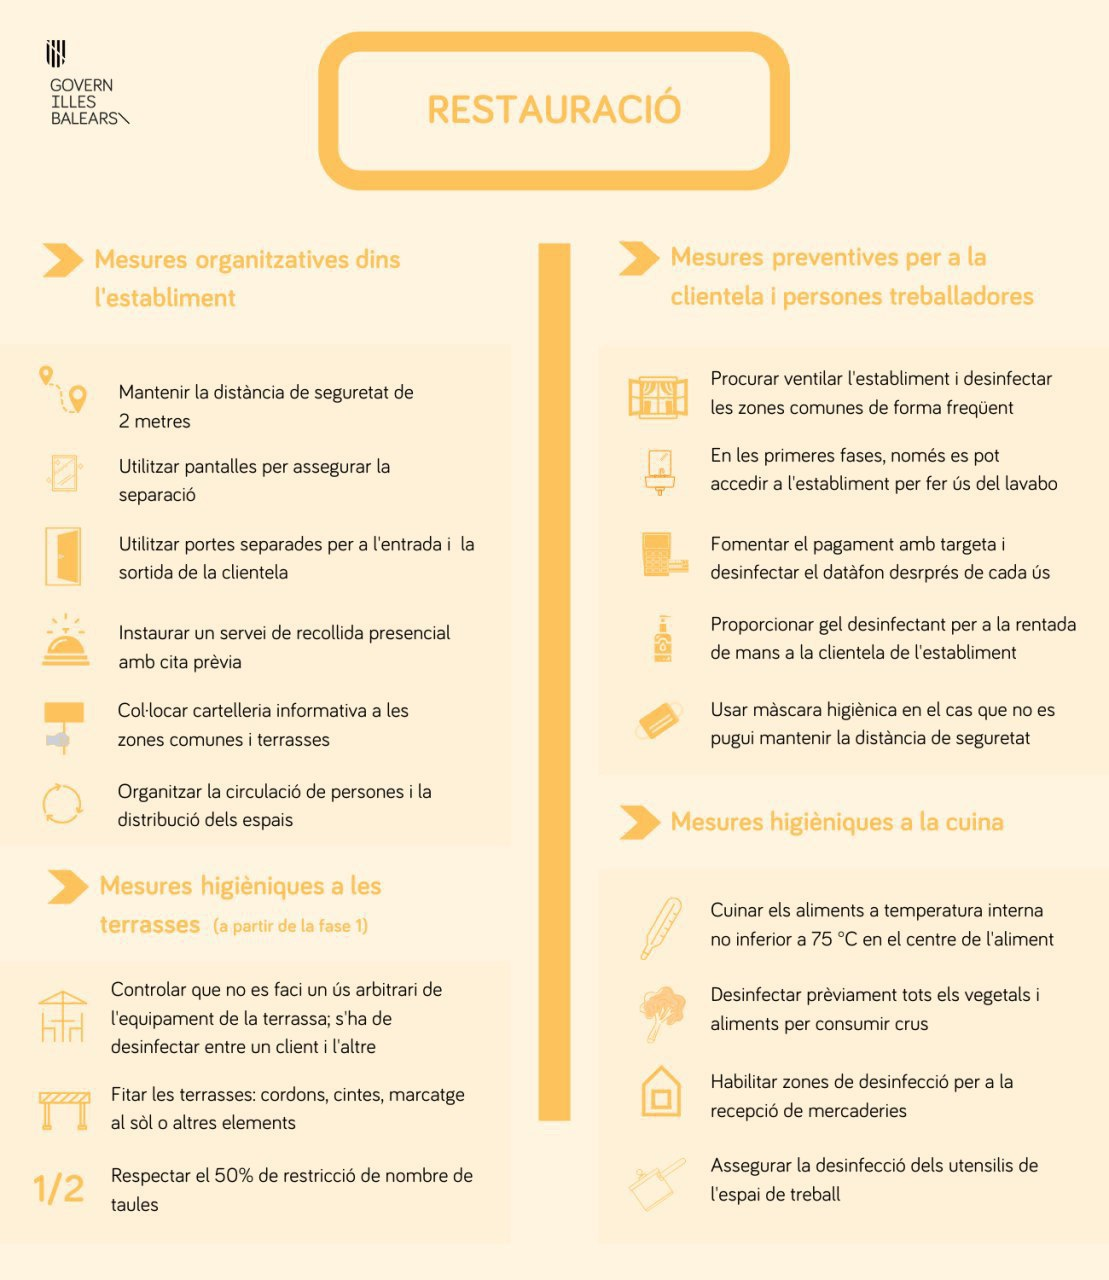 desc_mesures restauracio CAT.jpg